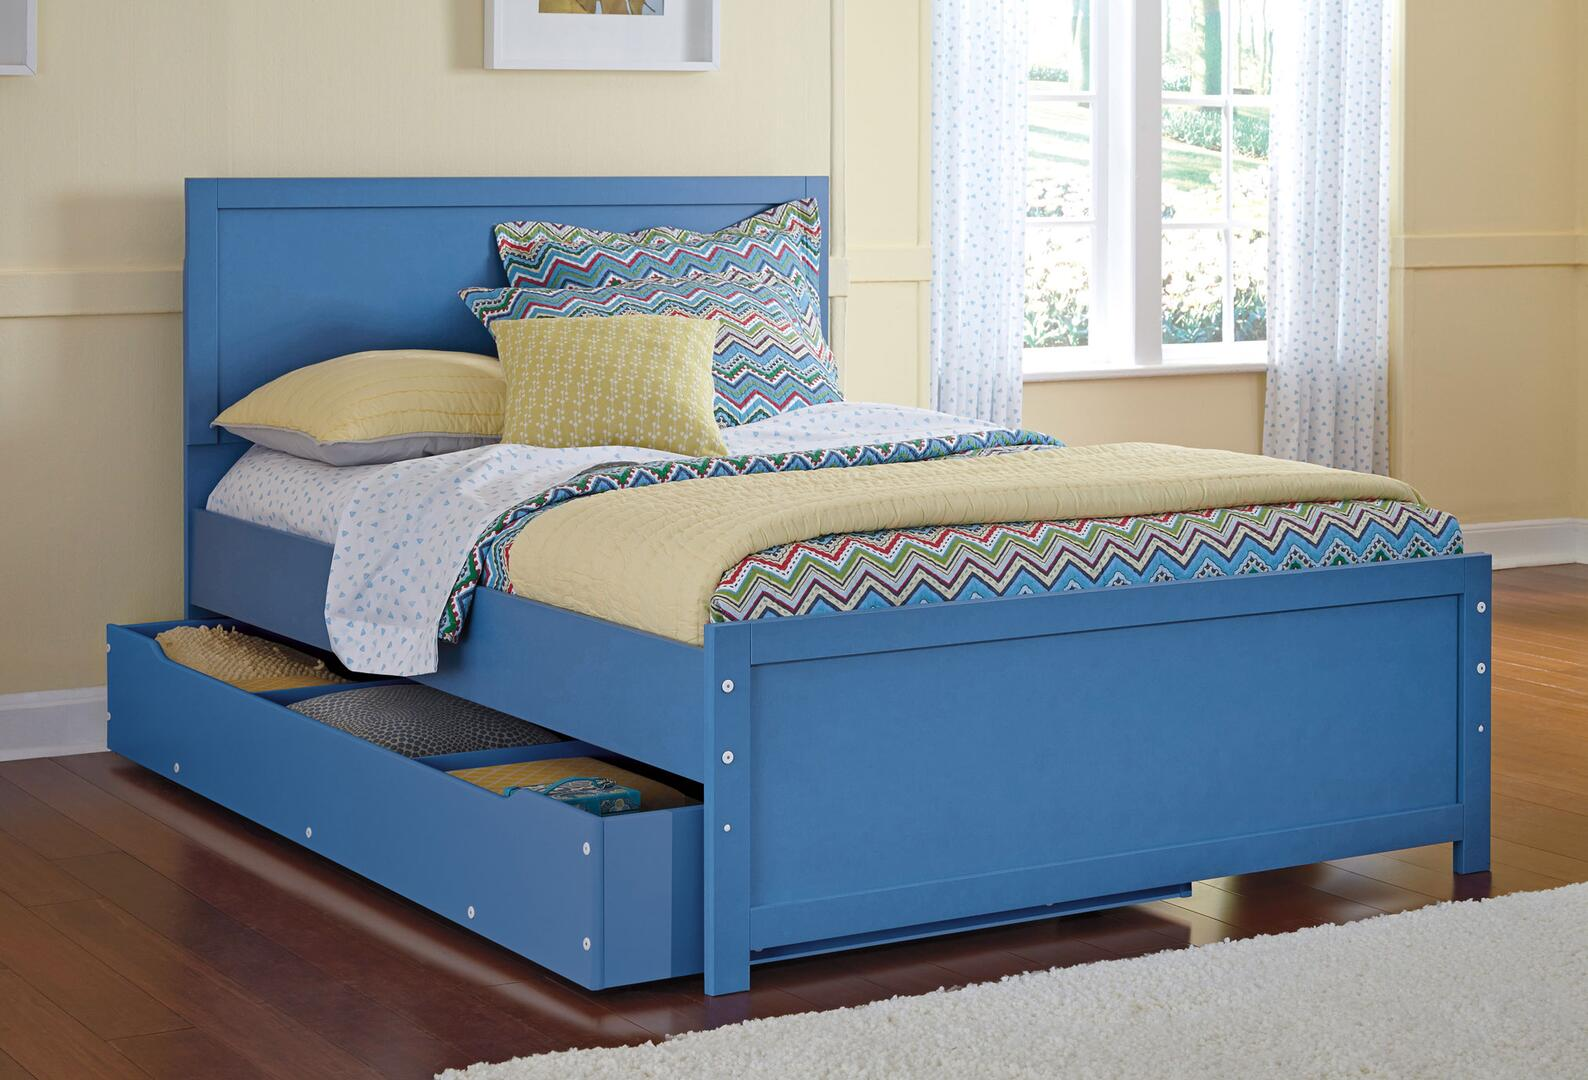 ashley furniture trundle bed instructions